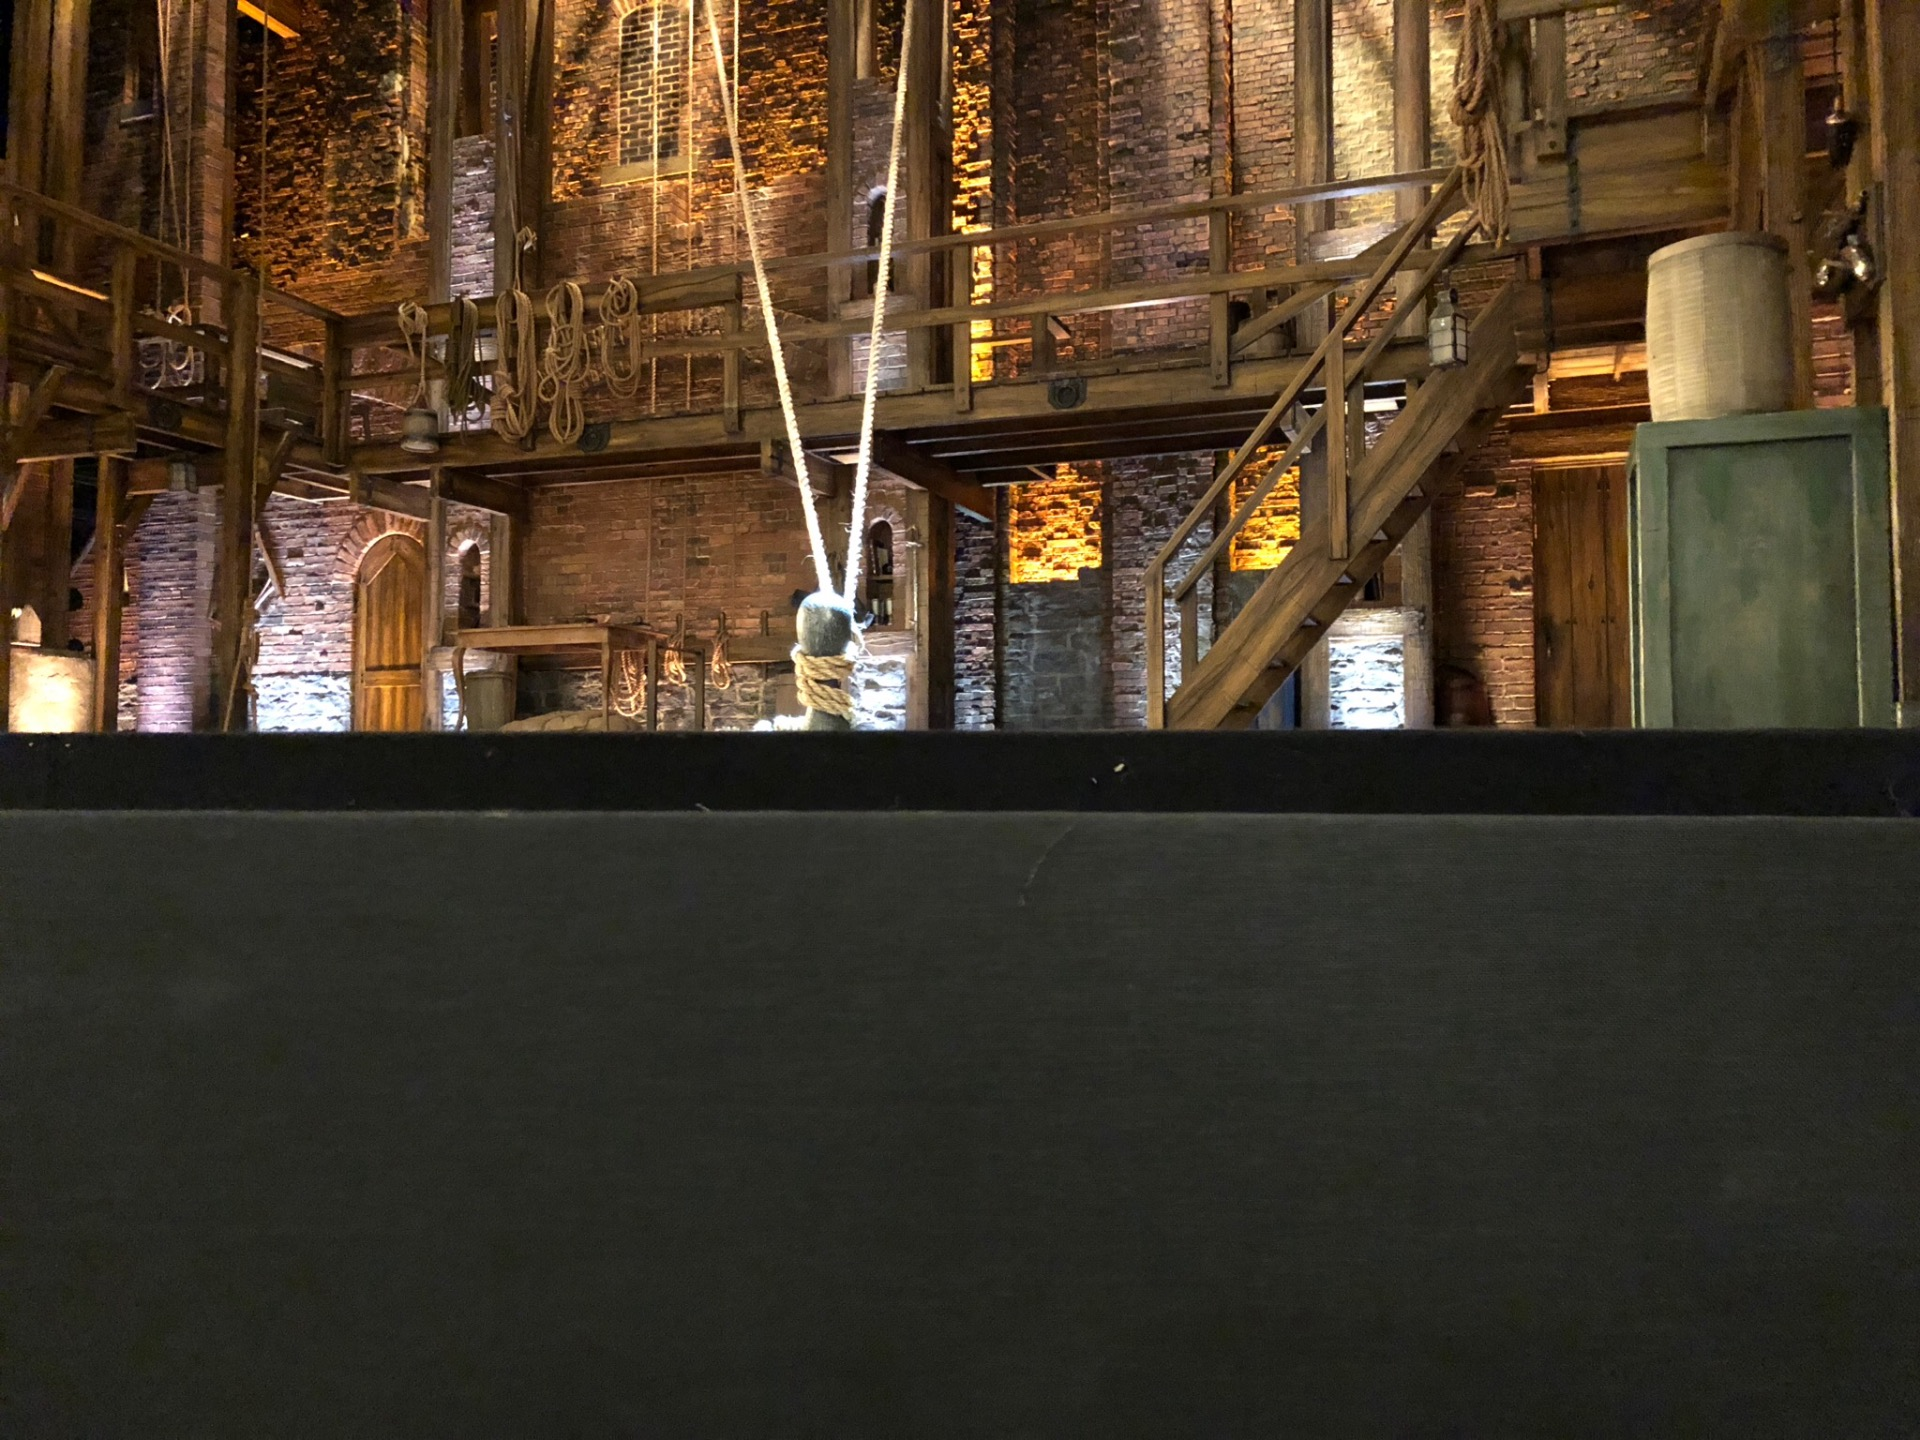 Victoria Palace Theatre Section Stalls Row A Seat 3